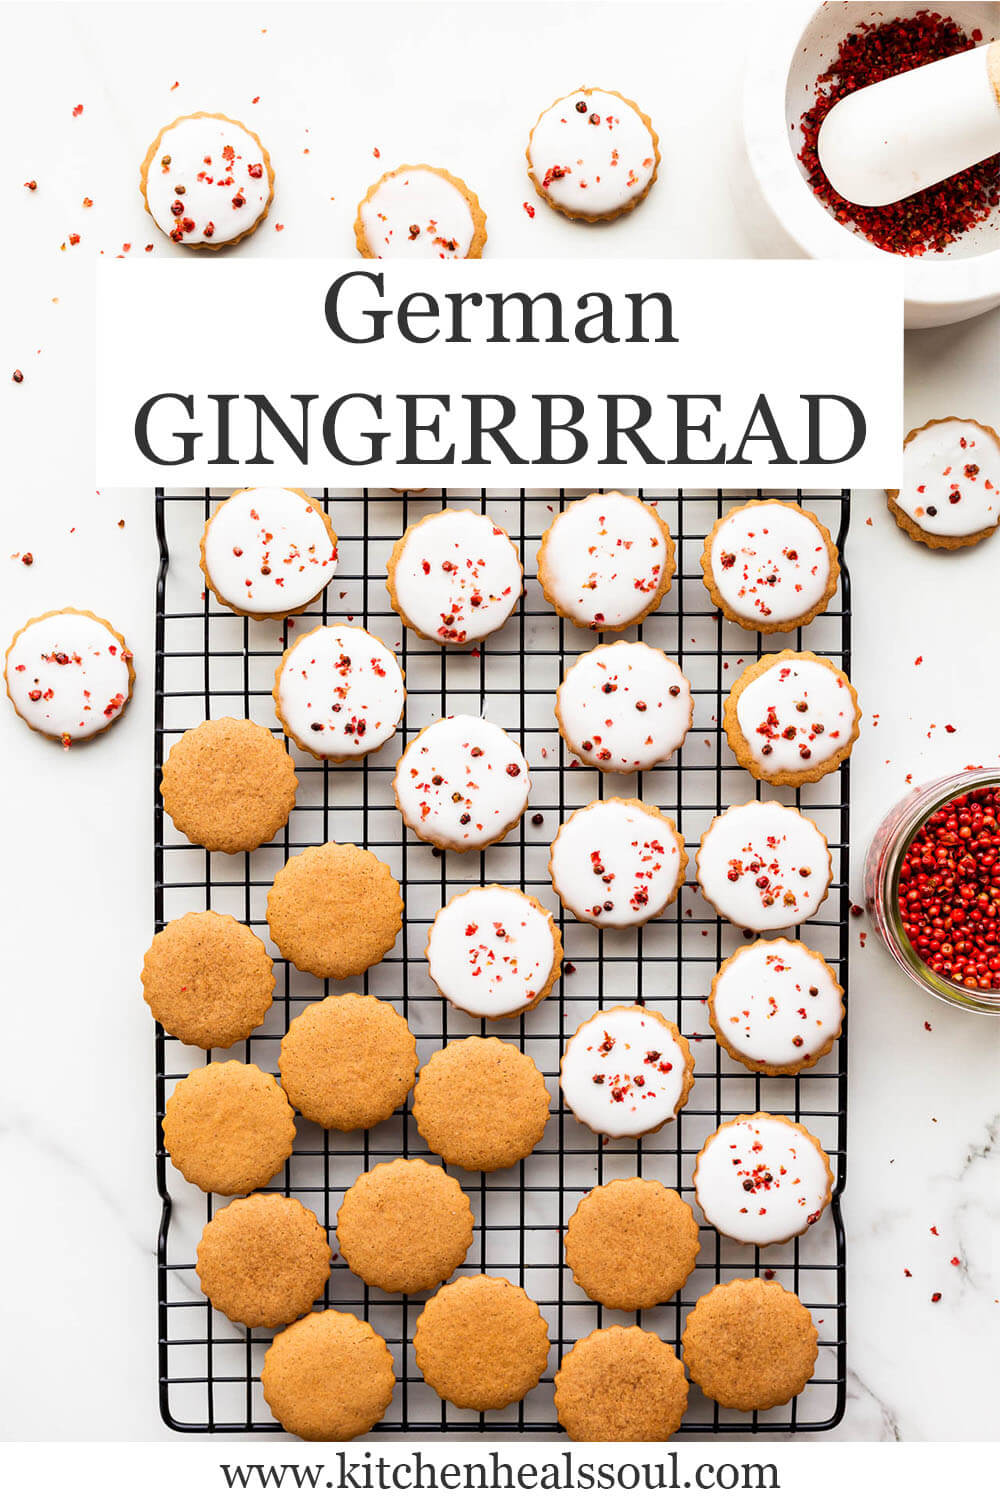 German gingerbread on a cooling rack in the process of being glazed with icing.